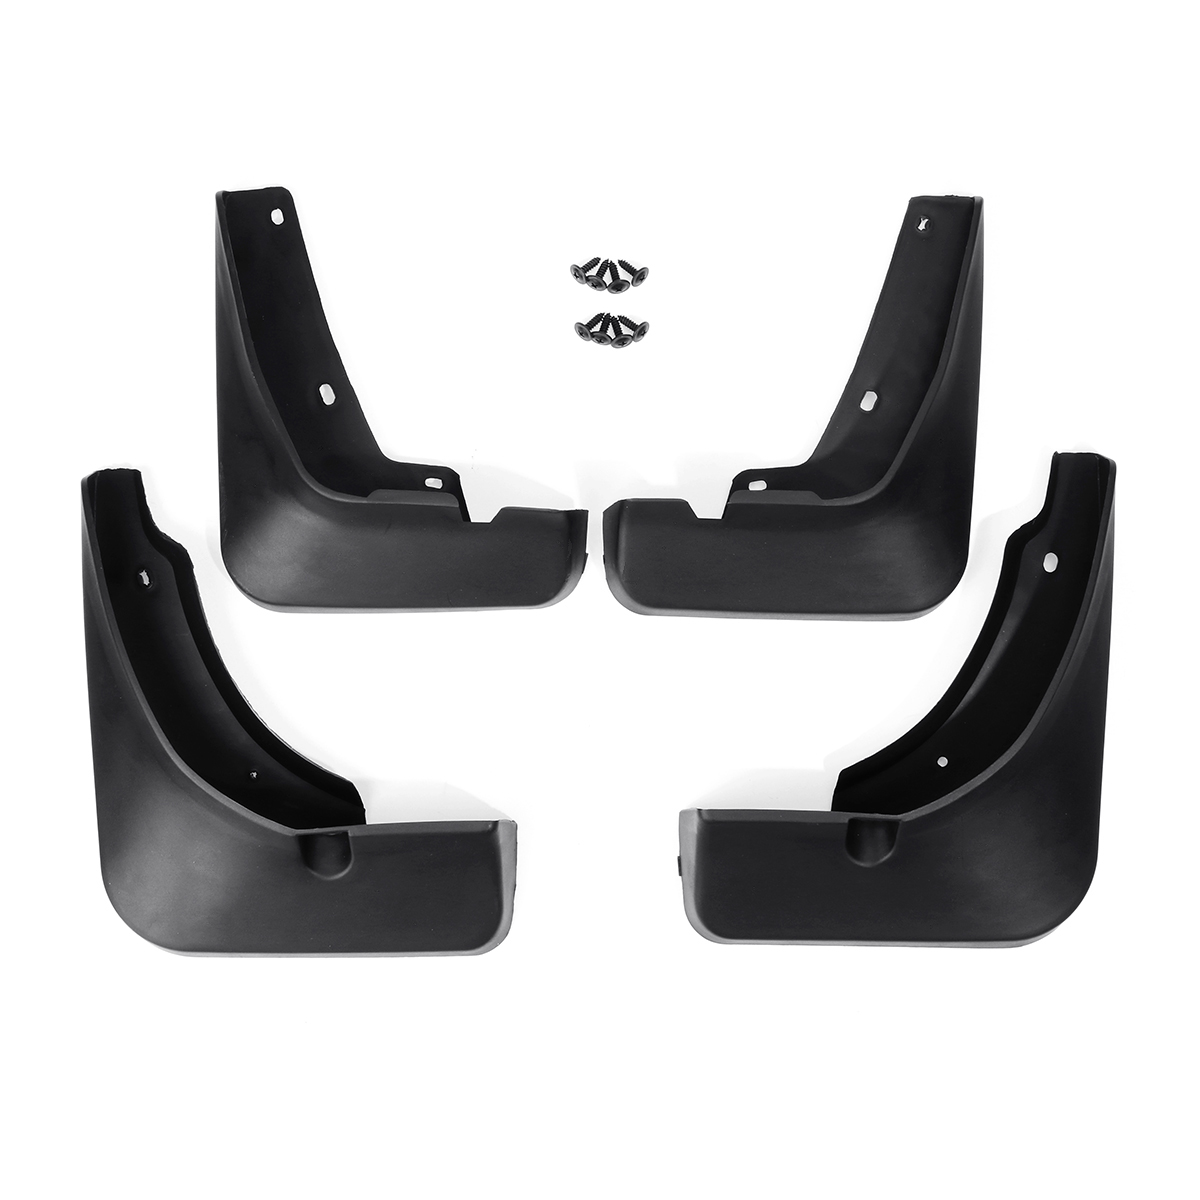 Car Mud Flaps Front Rear Mudguards Splash Guards for Fender Mudflaps For Geely Boyue Atlas NL3 Emgrand X7 Sport 2016-2019